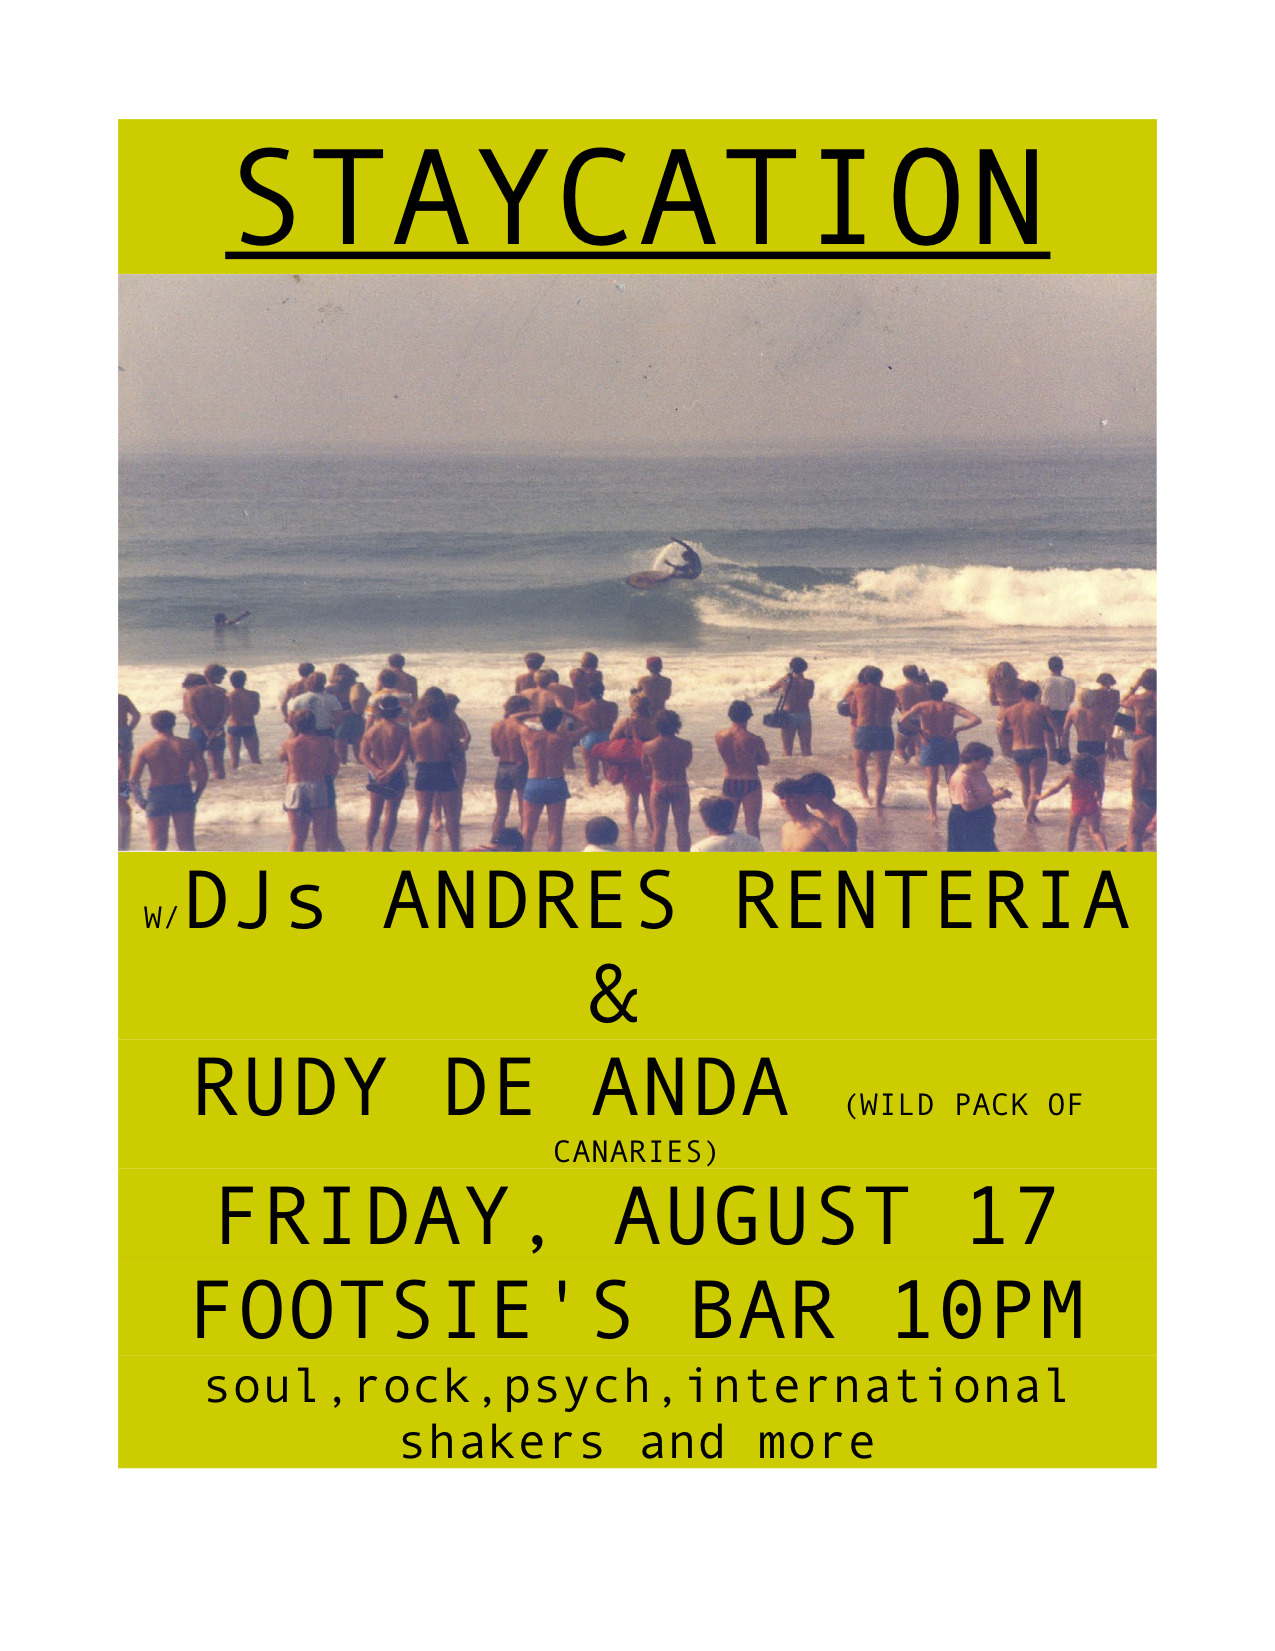 Tonight at Footsie's Bar…STAYCATION with me, Andres Renteria and special guest Rudy de Anda spinning records from 10pm-2am!!!  soul, rock, psych, funky 45s,  international shakers and more!!!!!!  Best bar in town, too!!!!!